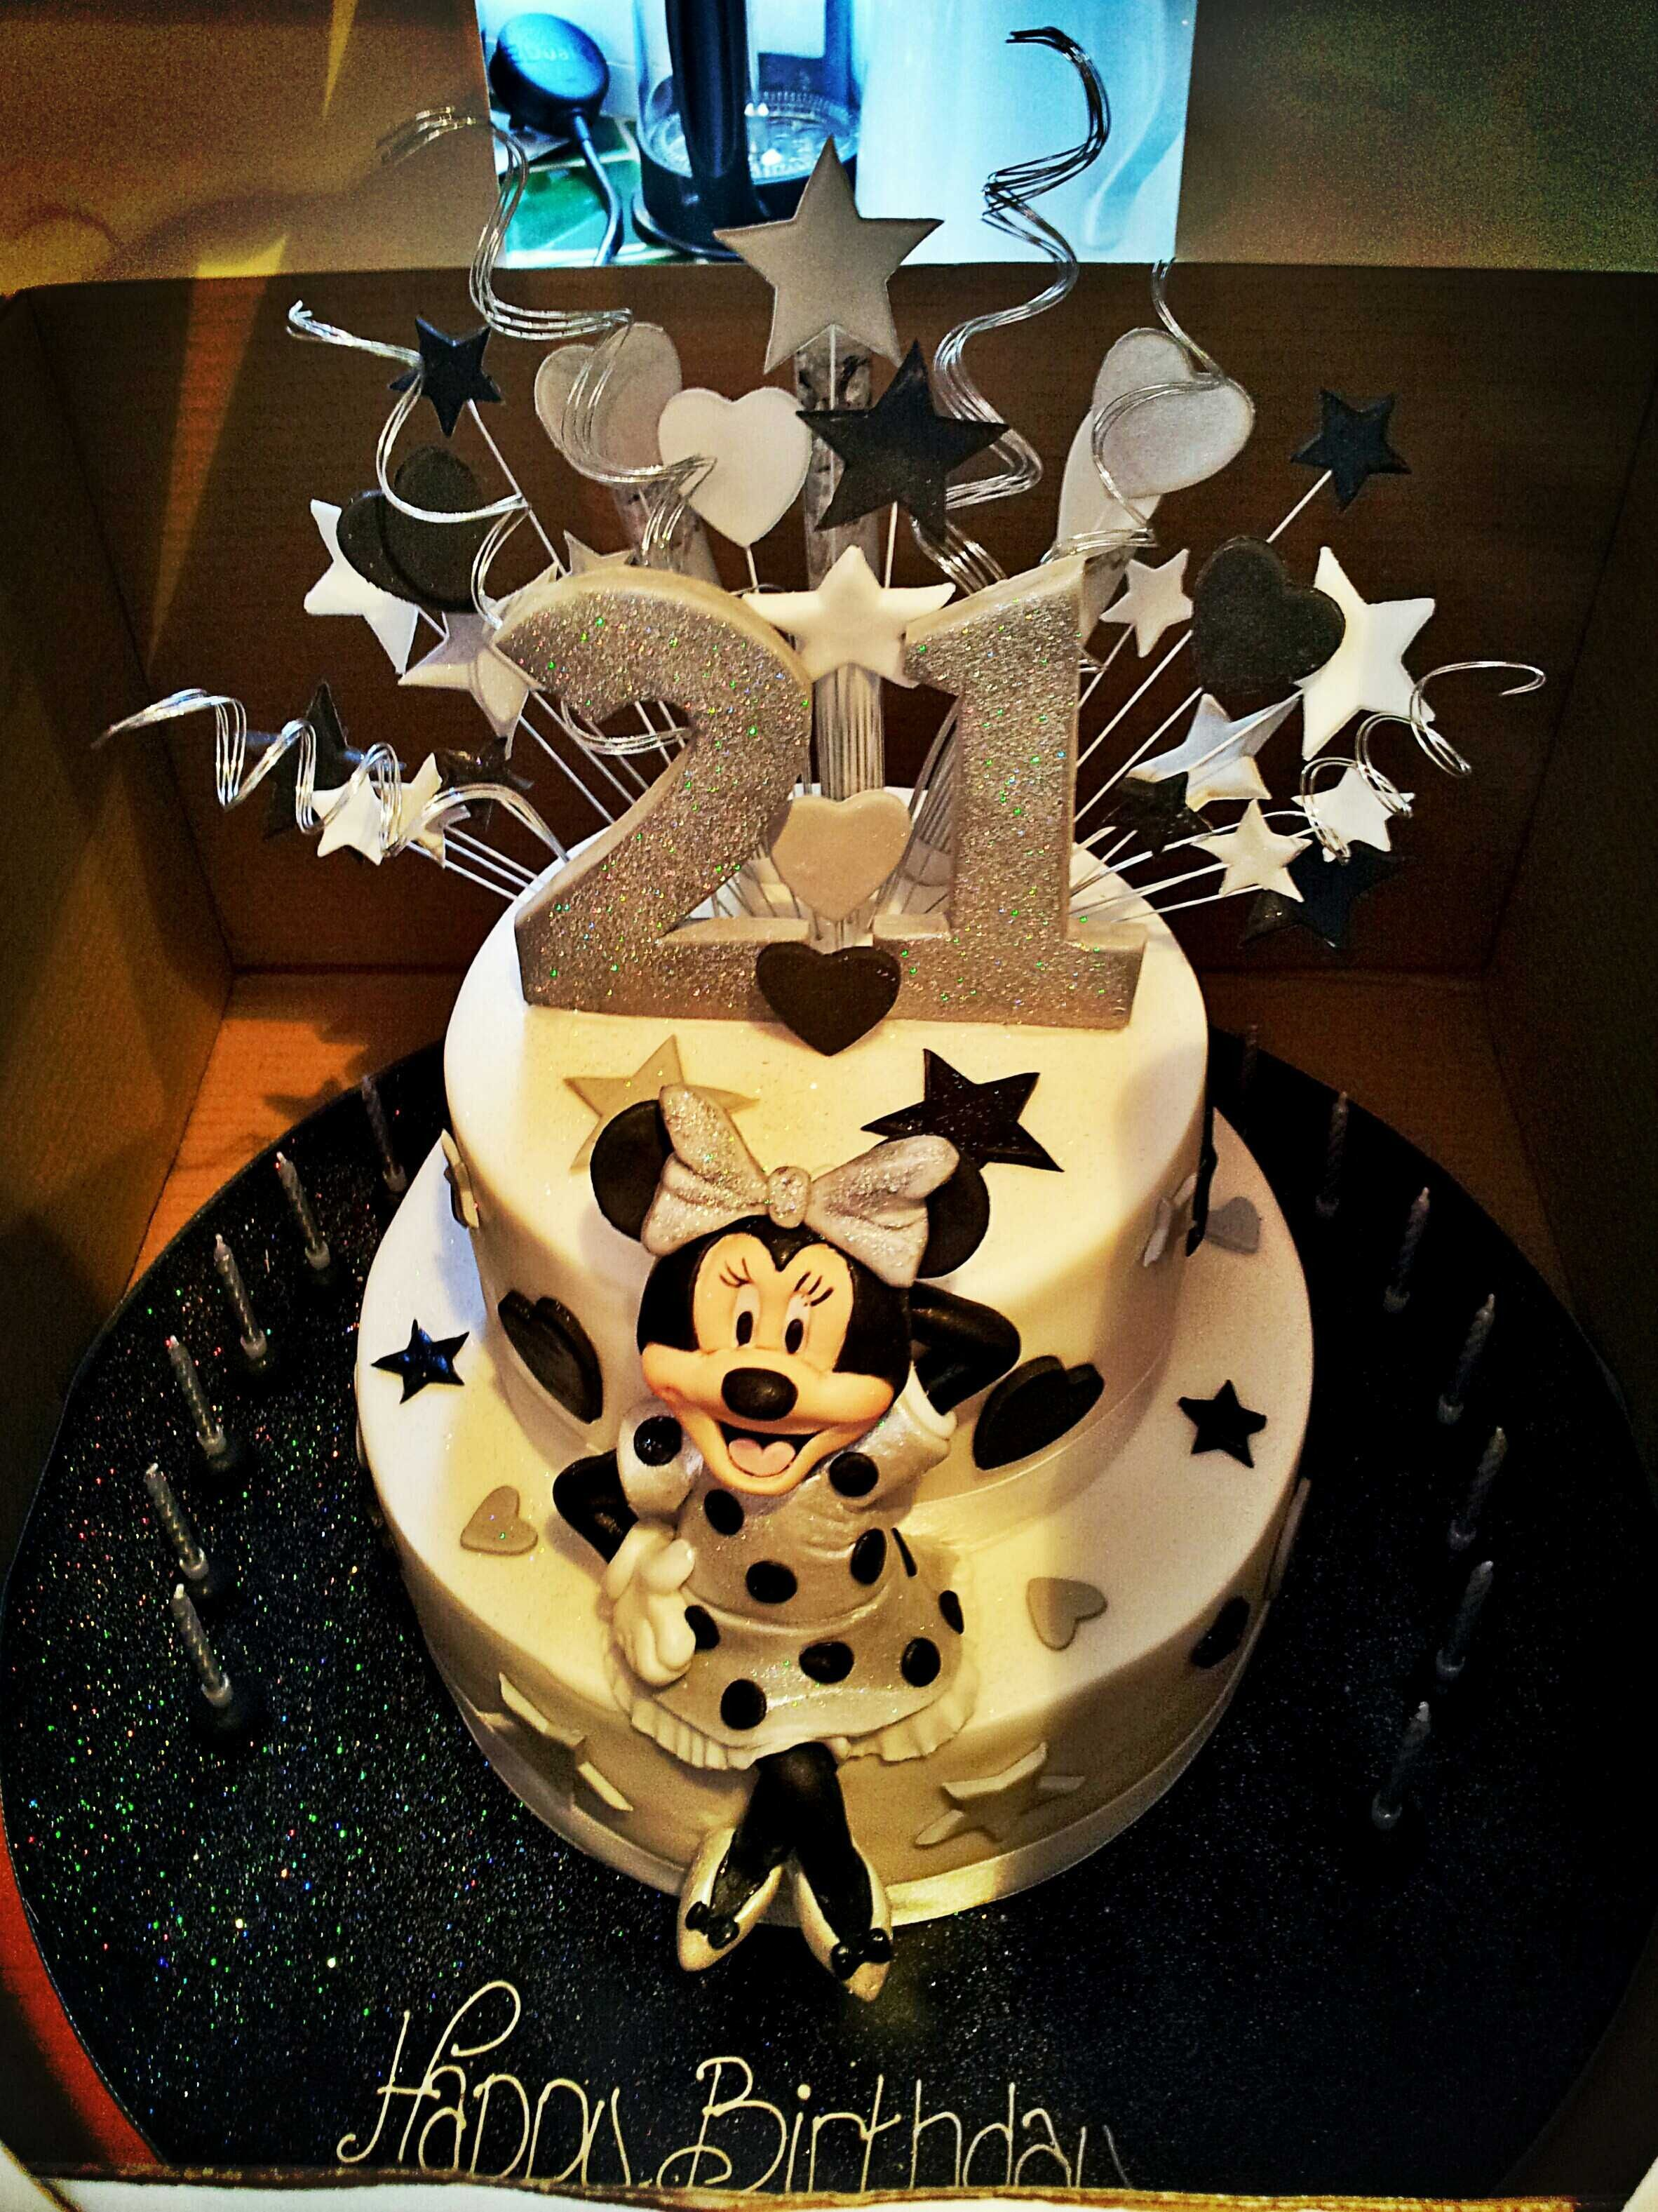 I REALLY WANT THIS CAKE Disney Minnie Mouse 21st Birthday